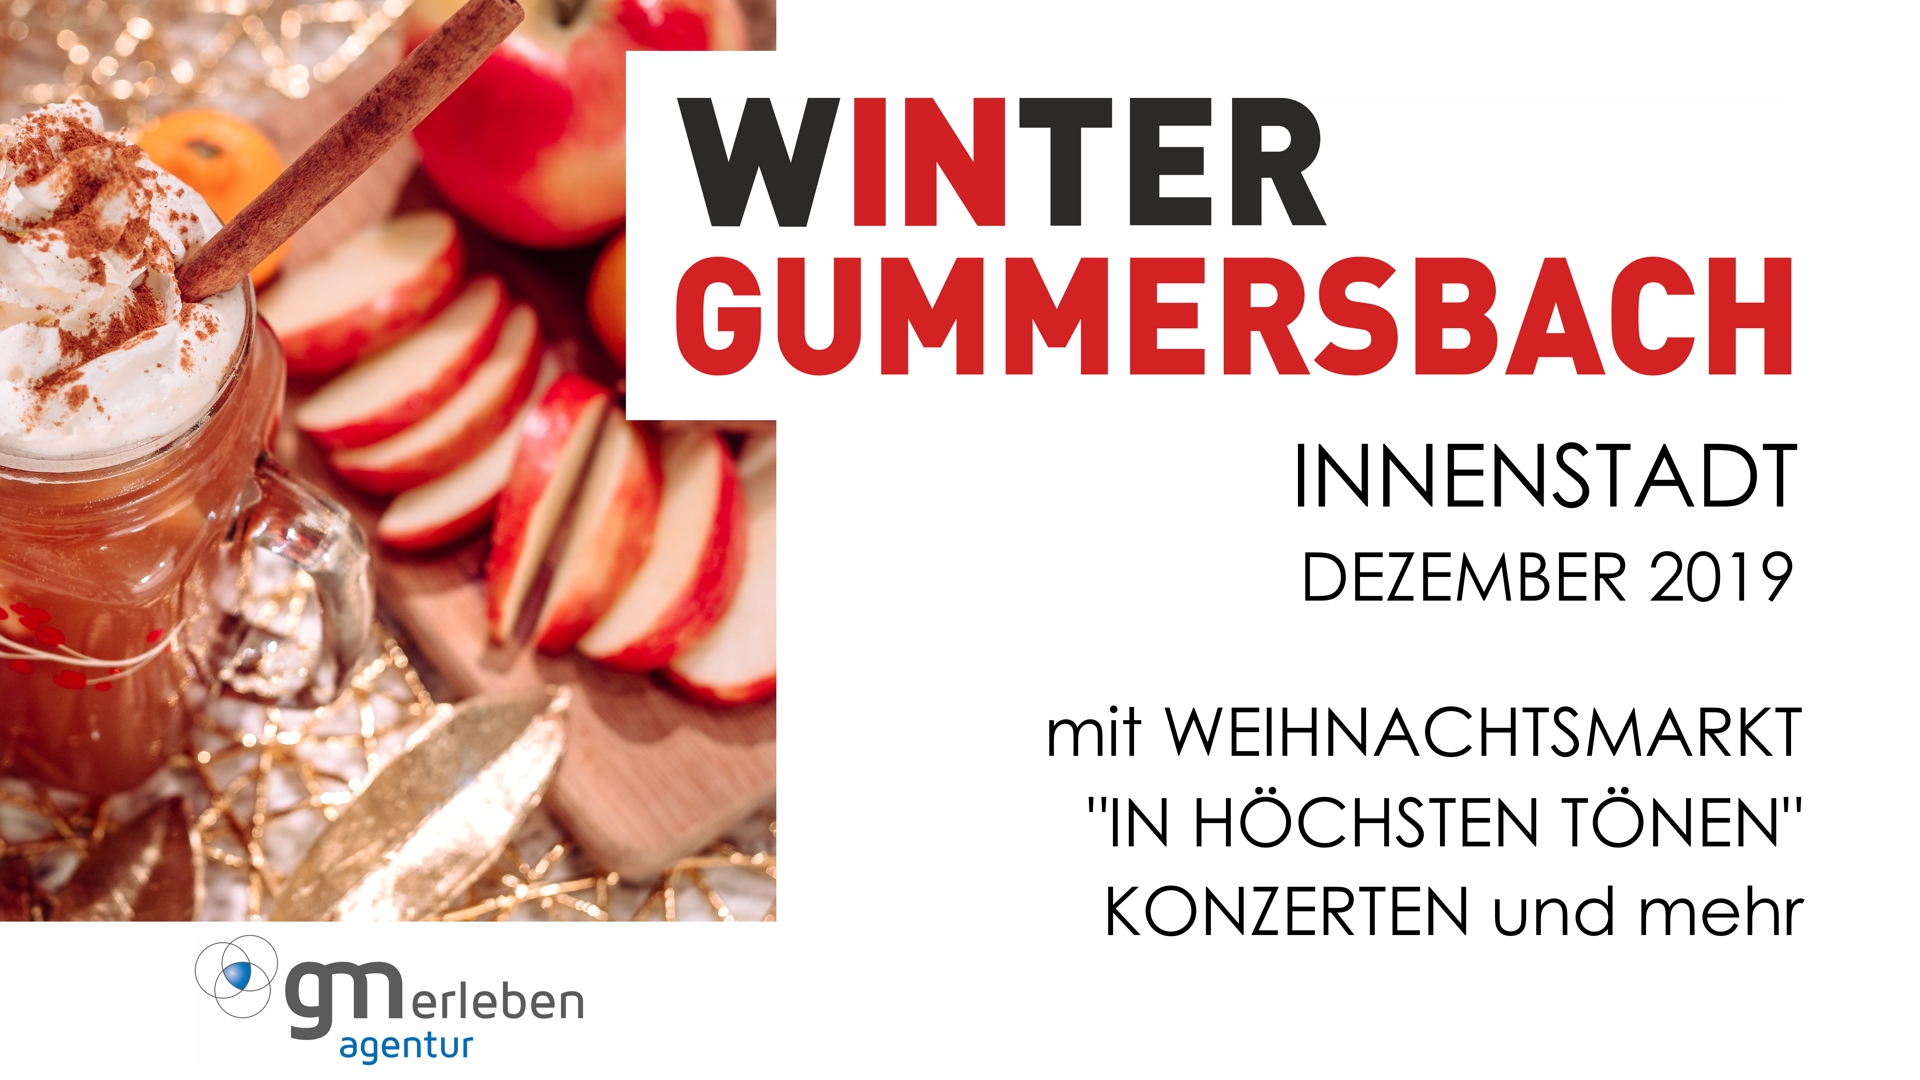 WINTER in Gummersbach